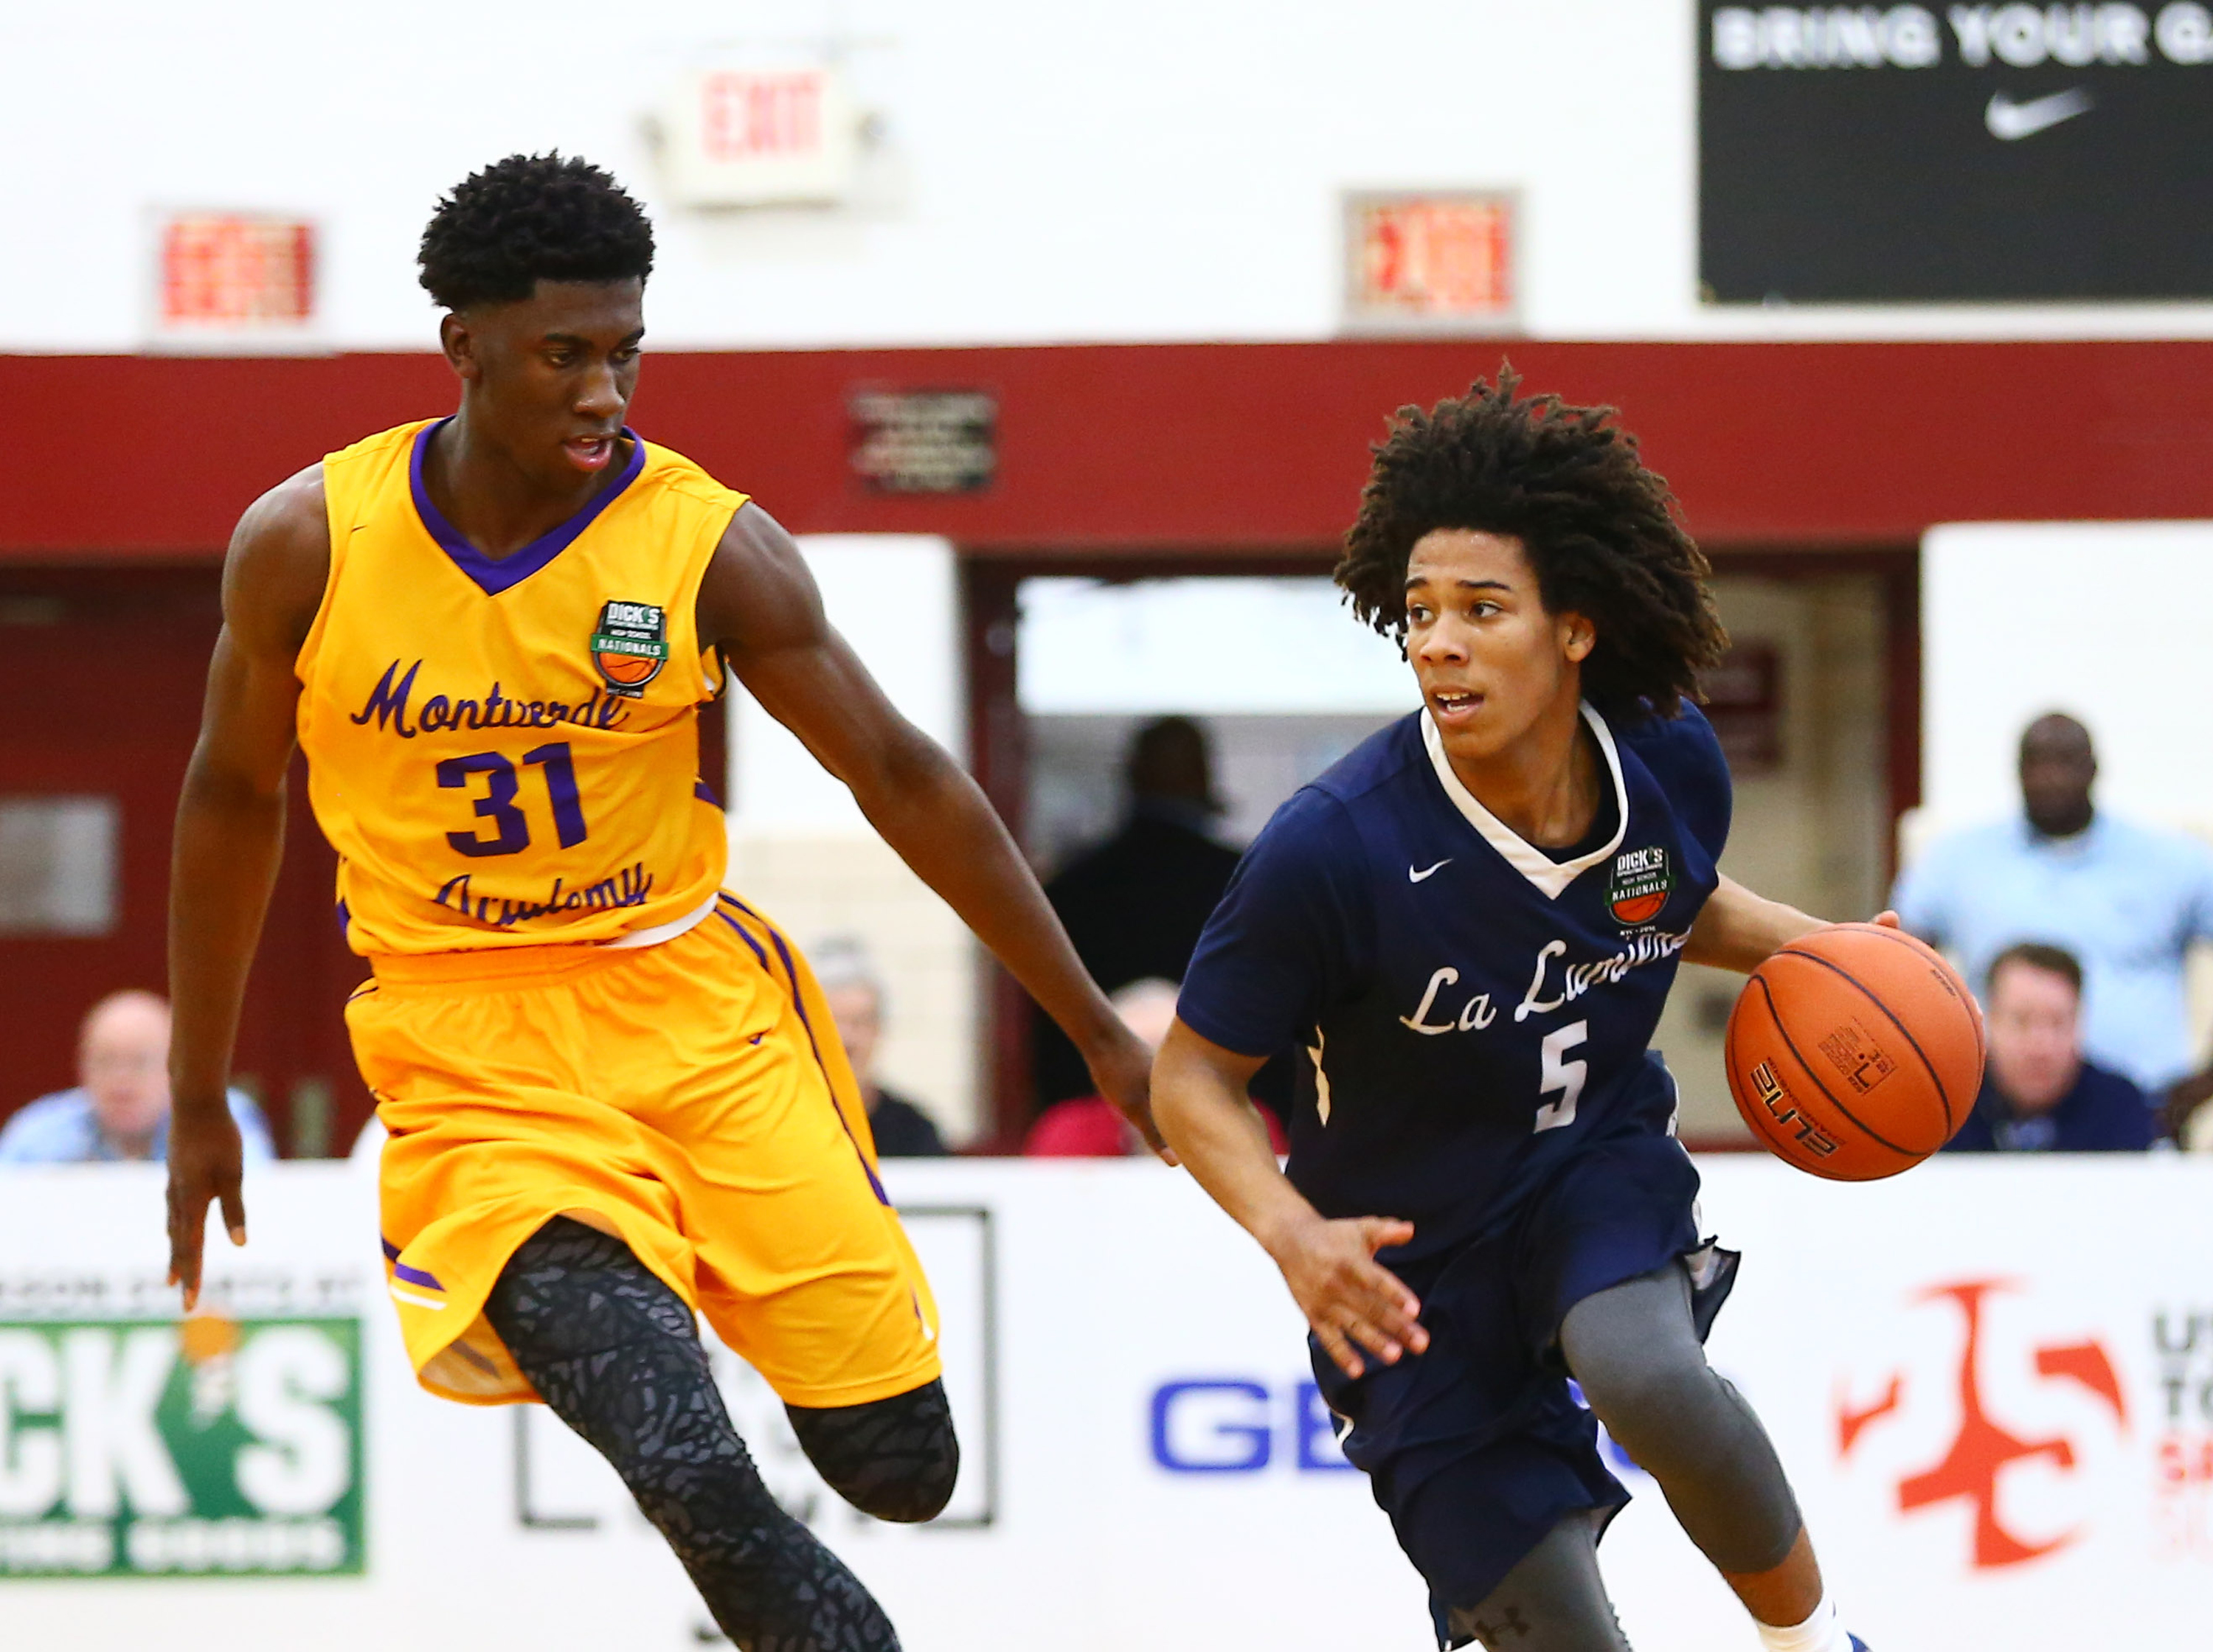 La Lumiere guard Tyger Campbell (5) helped the Lakers to their first finals appearance at the DICK'S Nationals (Photo: Andy Marlin, USA TODAY Sports)